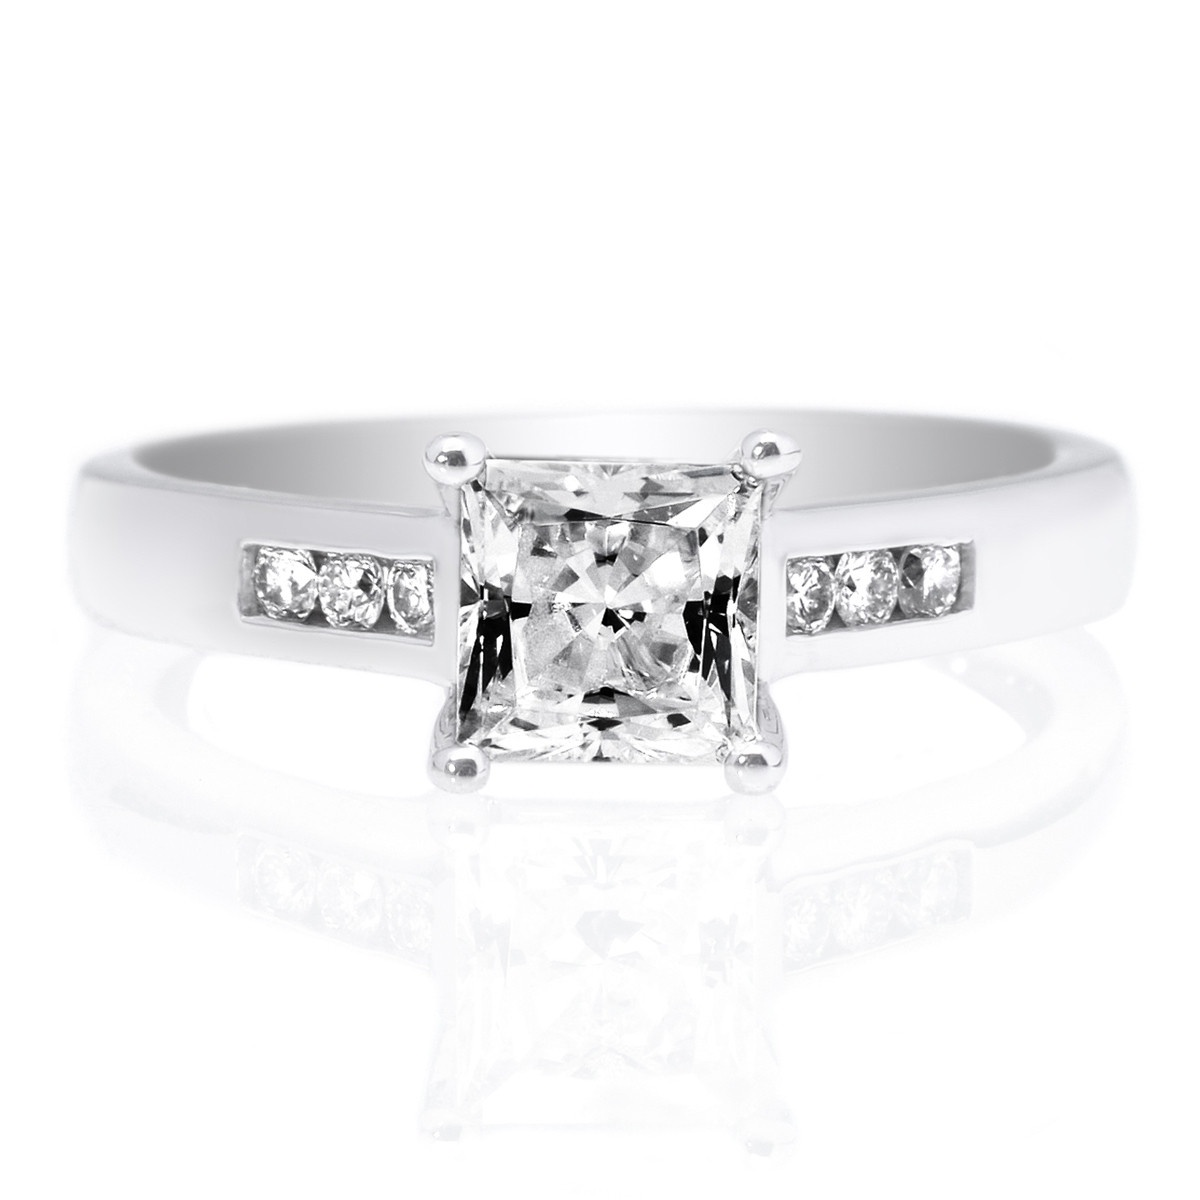 Top 5 Best Engagement Ring Settings: Channel Setting